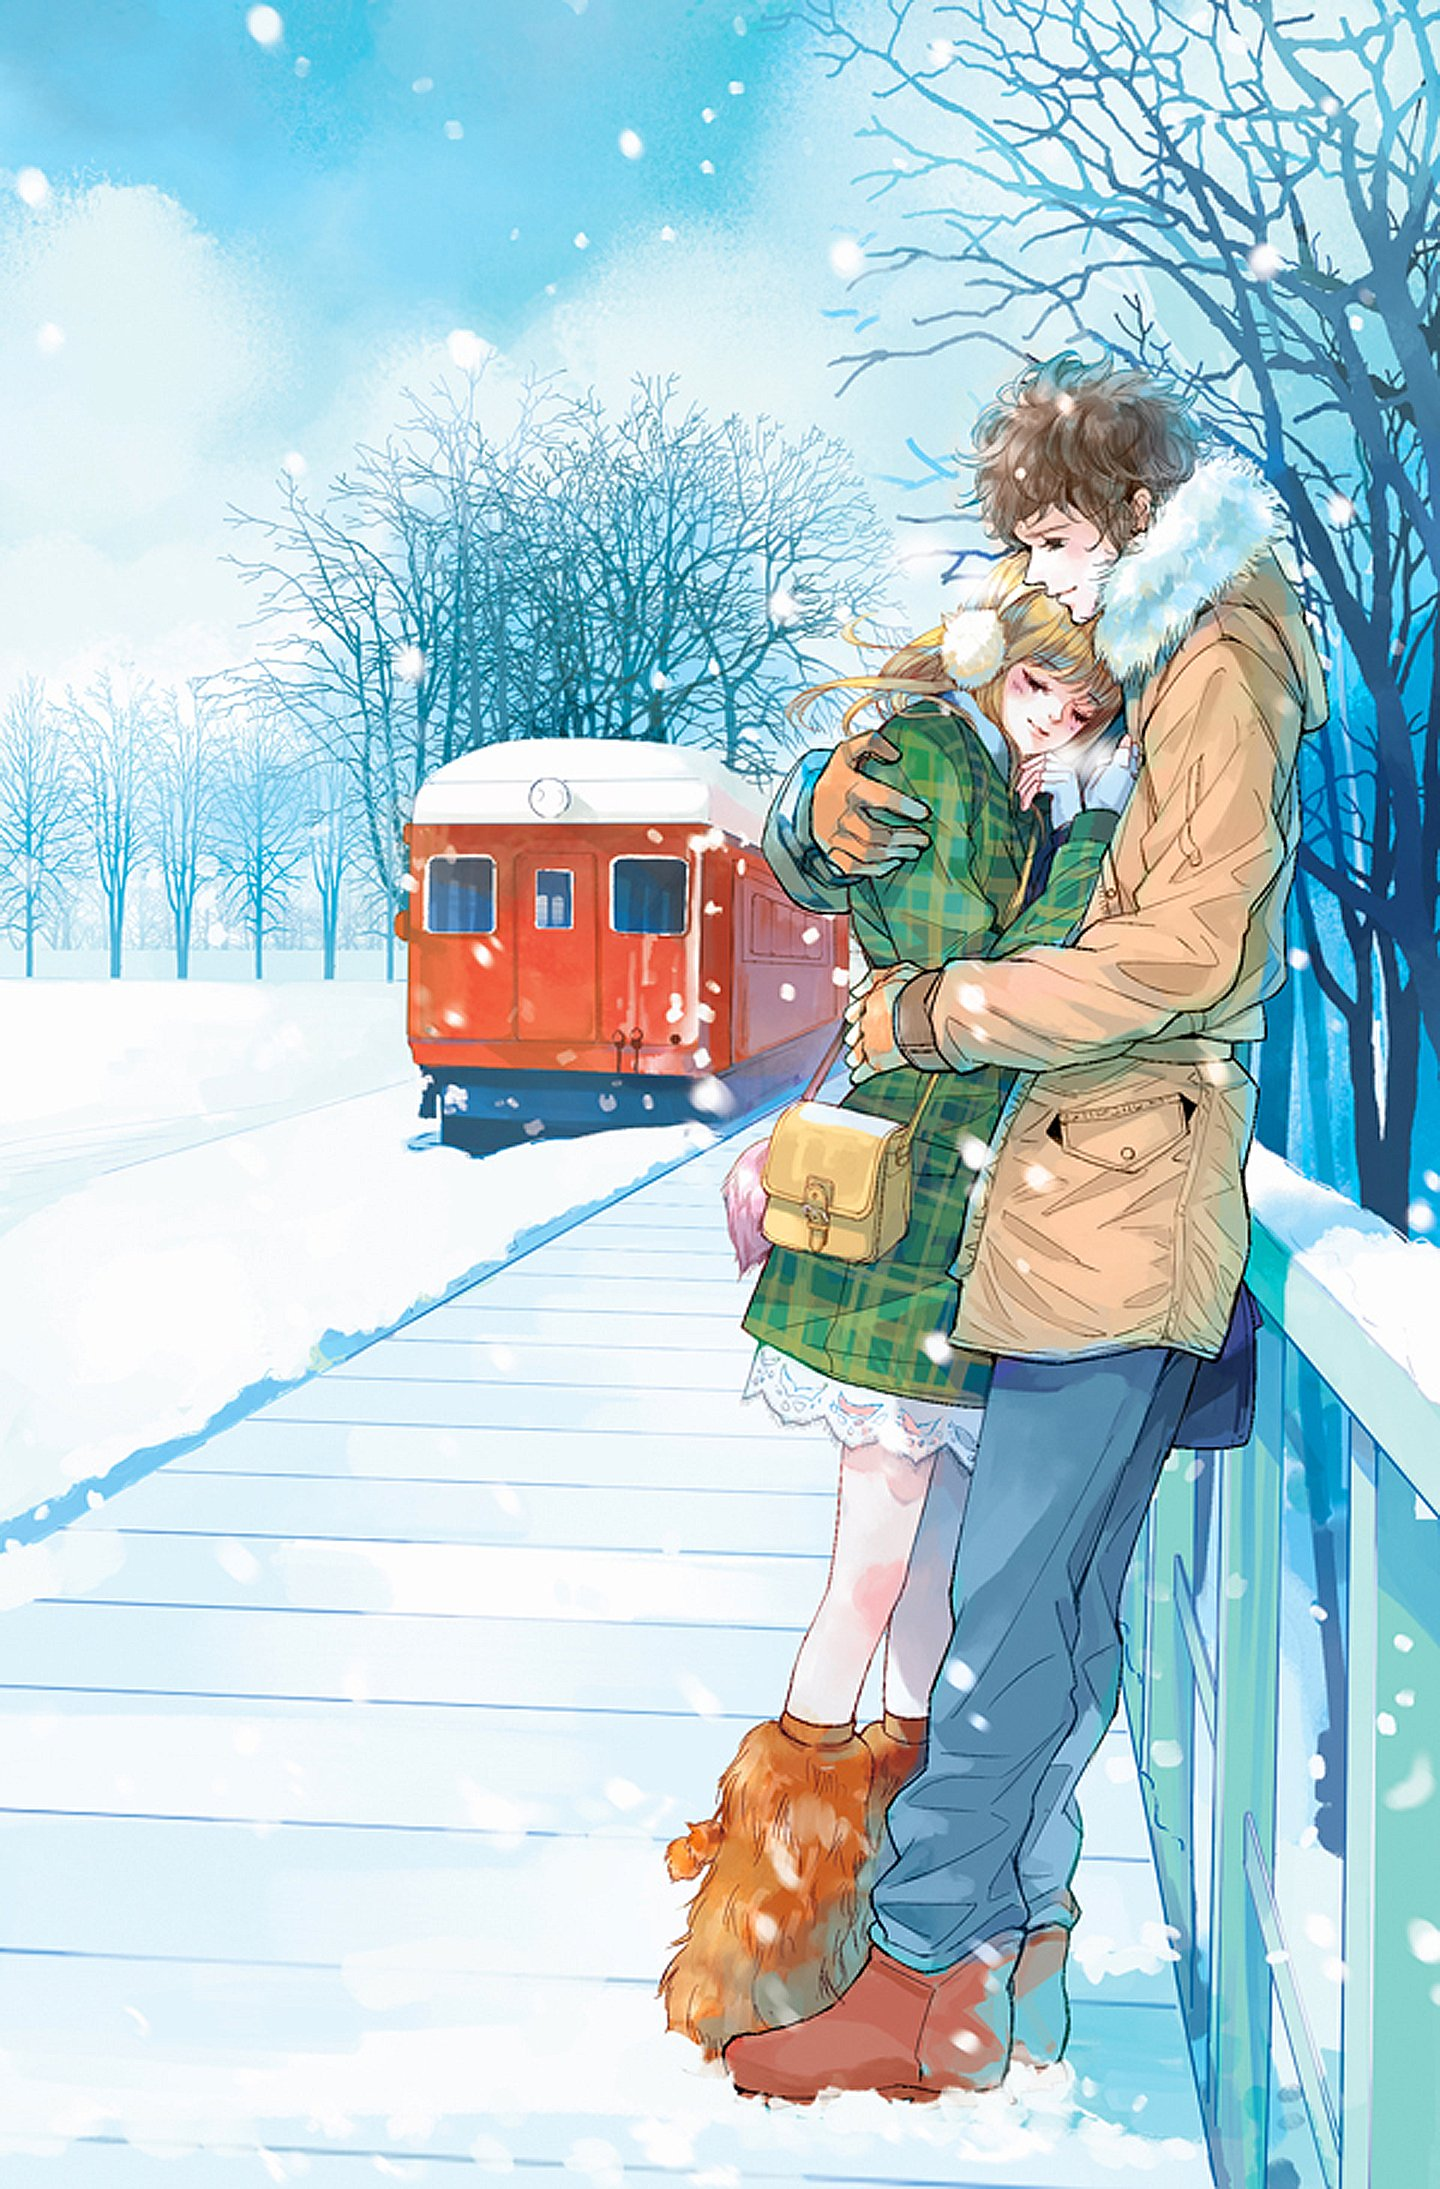 Red Train Anime Couple Snow Romantic Love Tree Wallpaper